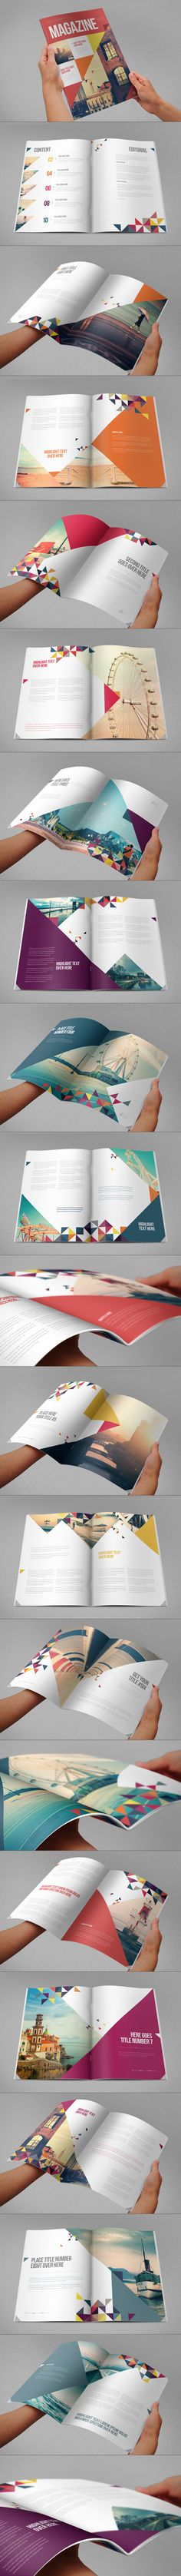 I like the use of shapes on the cover and throughout the magazine. The triangles and colors help brand the magazine. It's an interesting way to use design elements to show that the magazine is editorial. Design Brochure, Brochure Layout, Graphic Design Layouts, Graphic Design Inspiration, Branding Design, Portfolio Covers, Portfolio Design, Web Design, Design Art